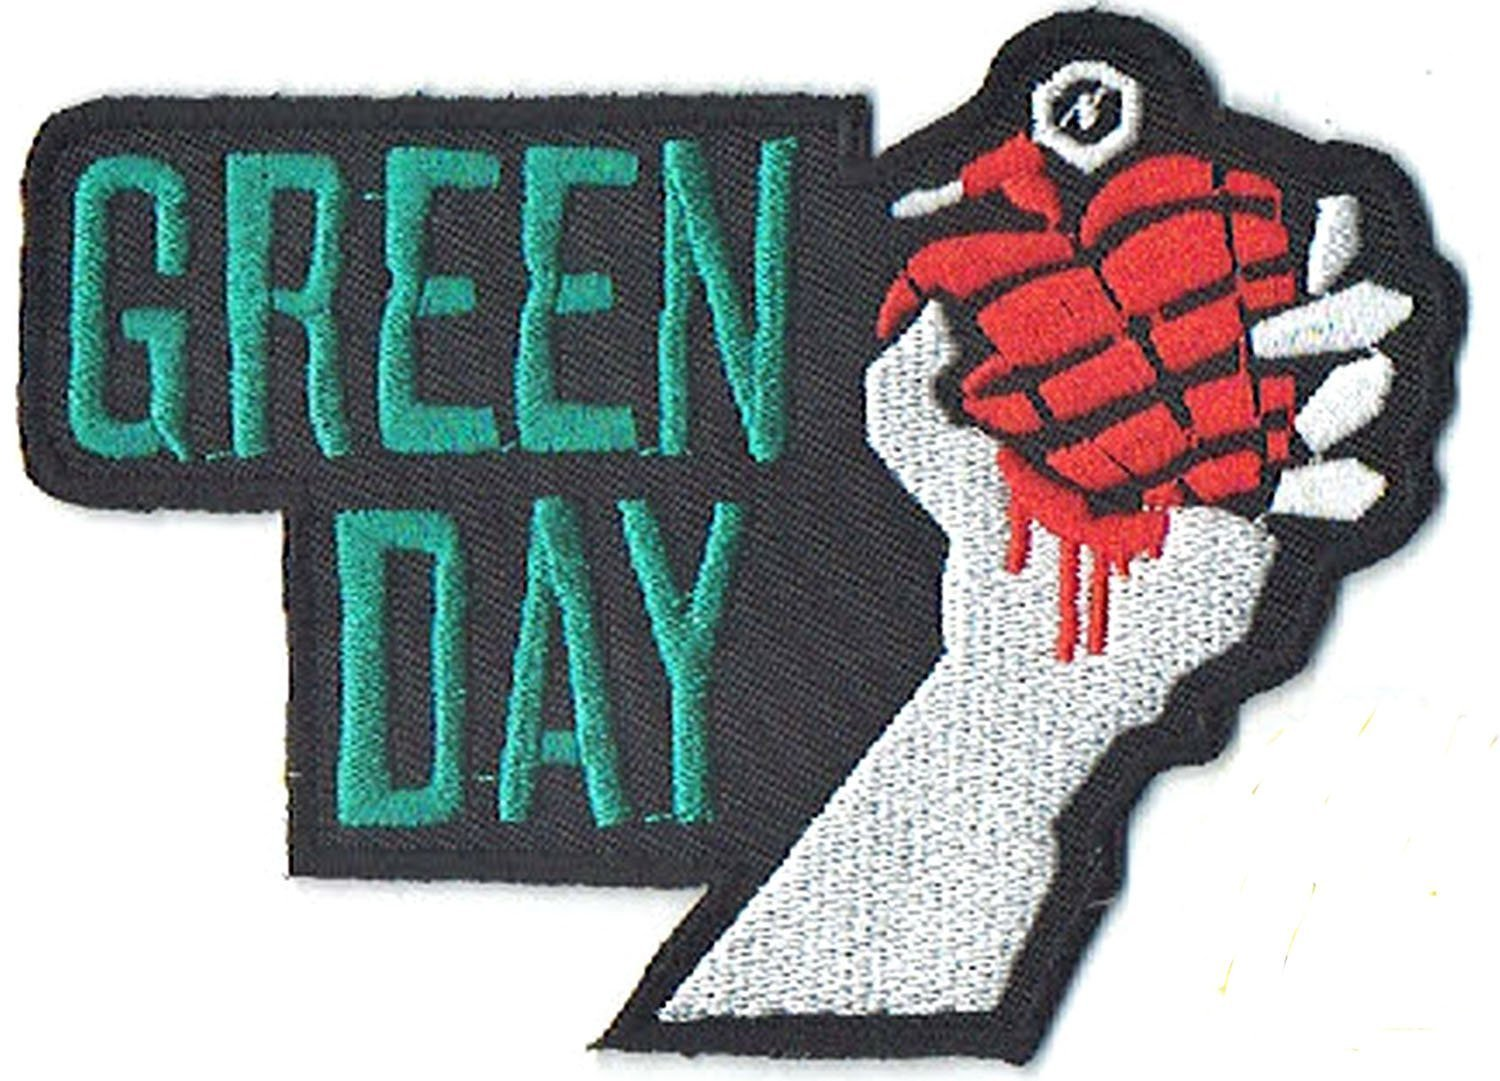 Green Day apliques bordados de hierro en parches por PATCH CUBE